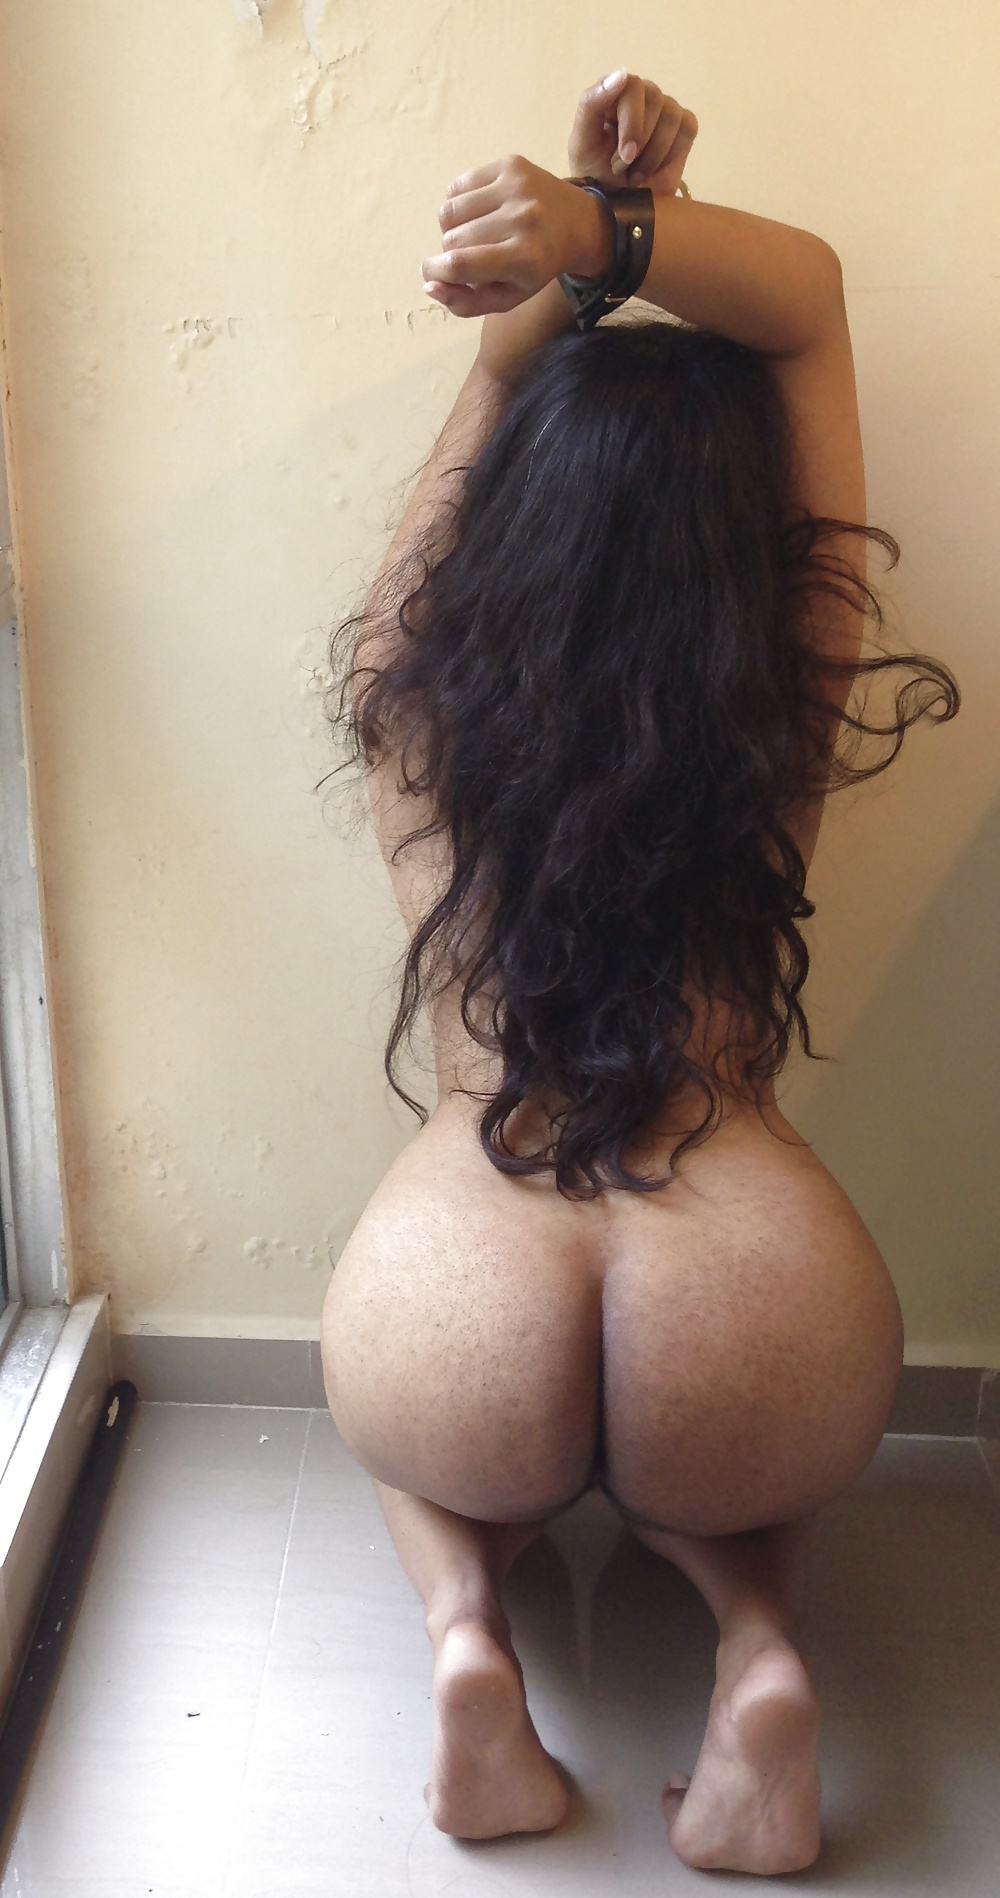 from Nicolas naked atk desi girl pictures